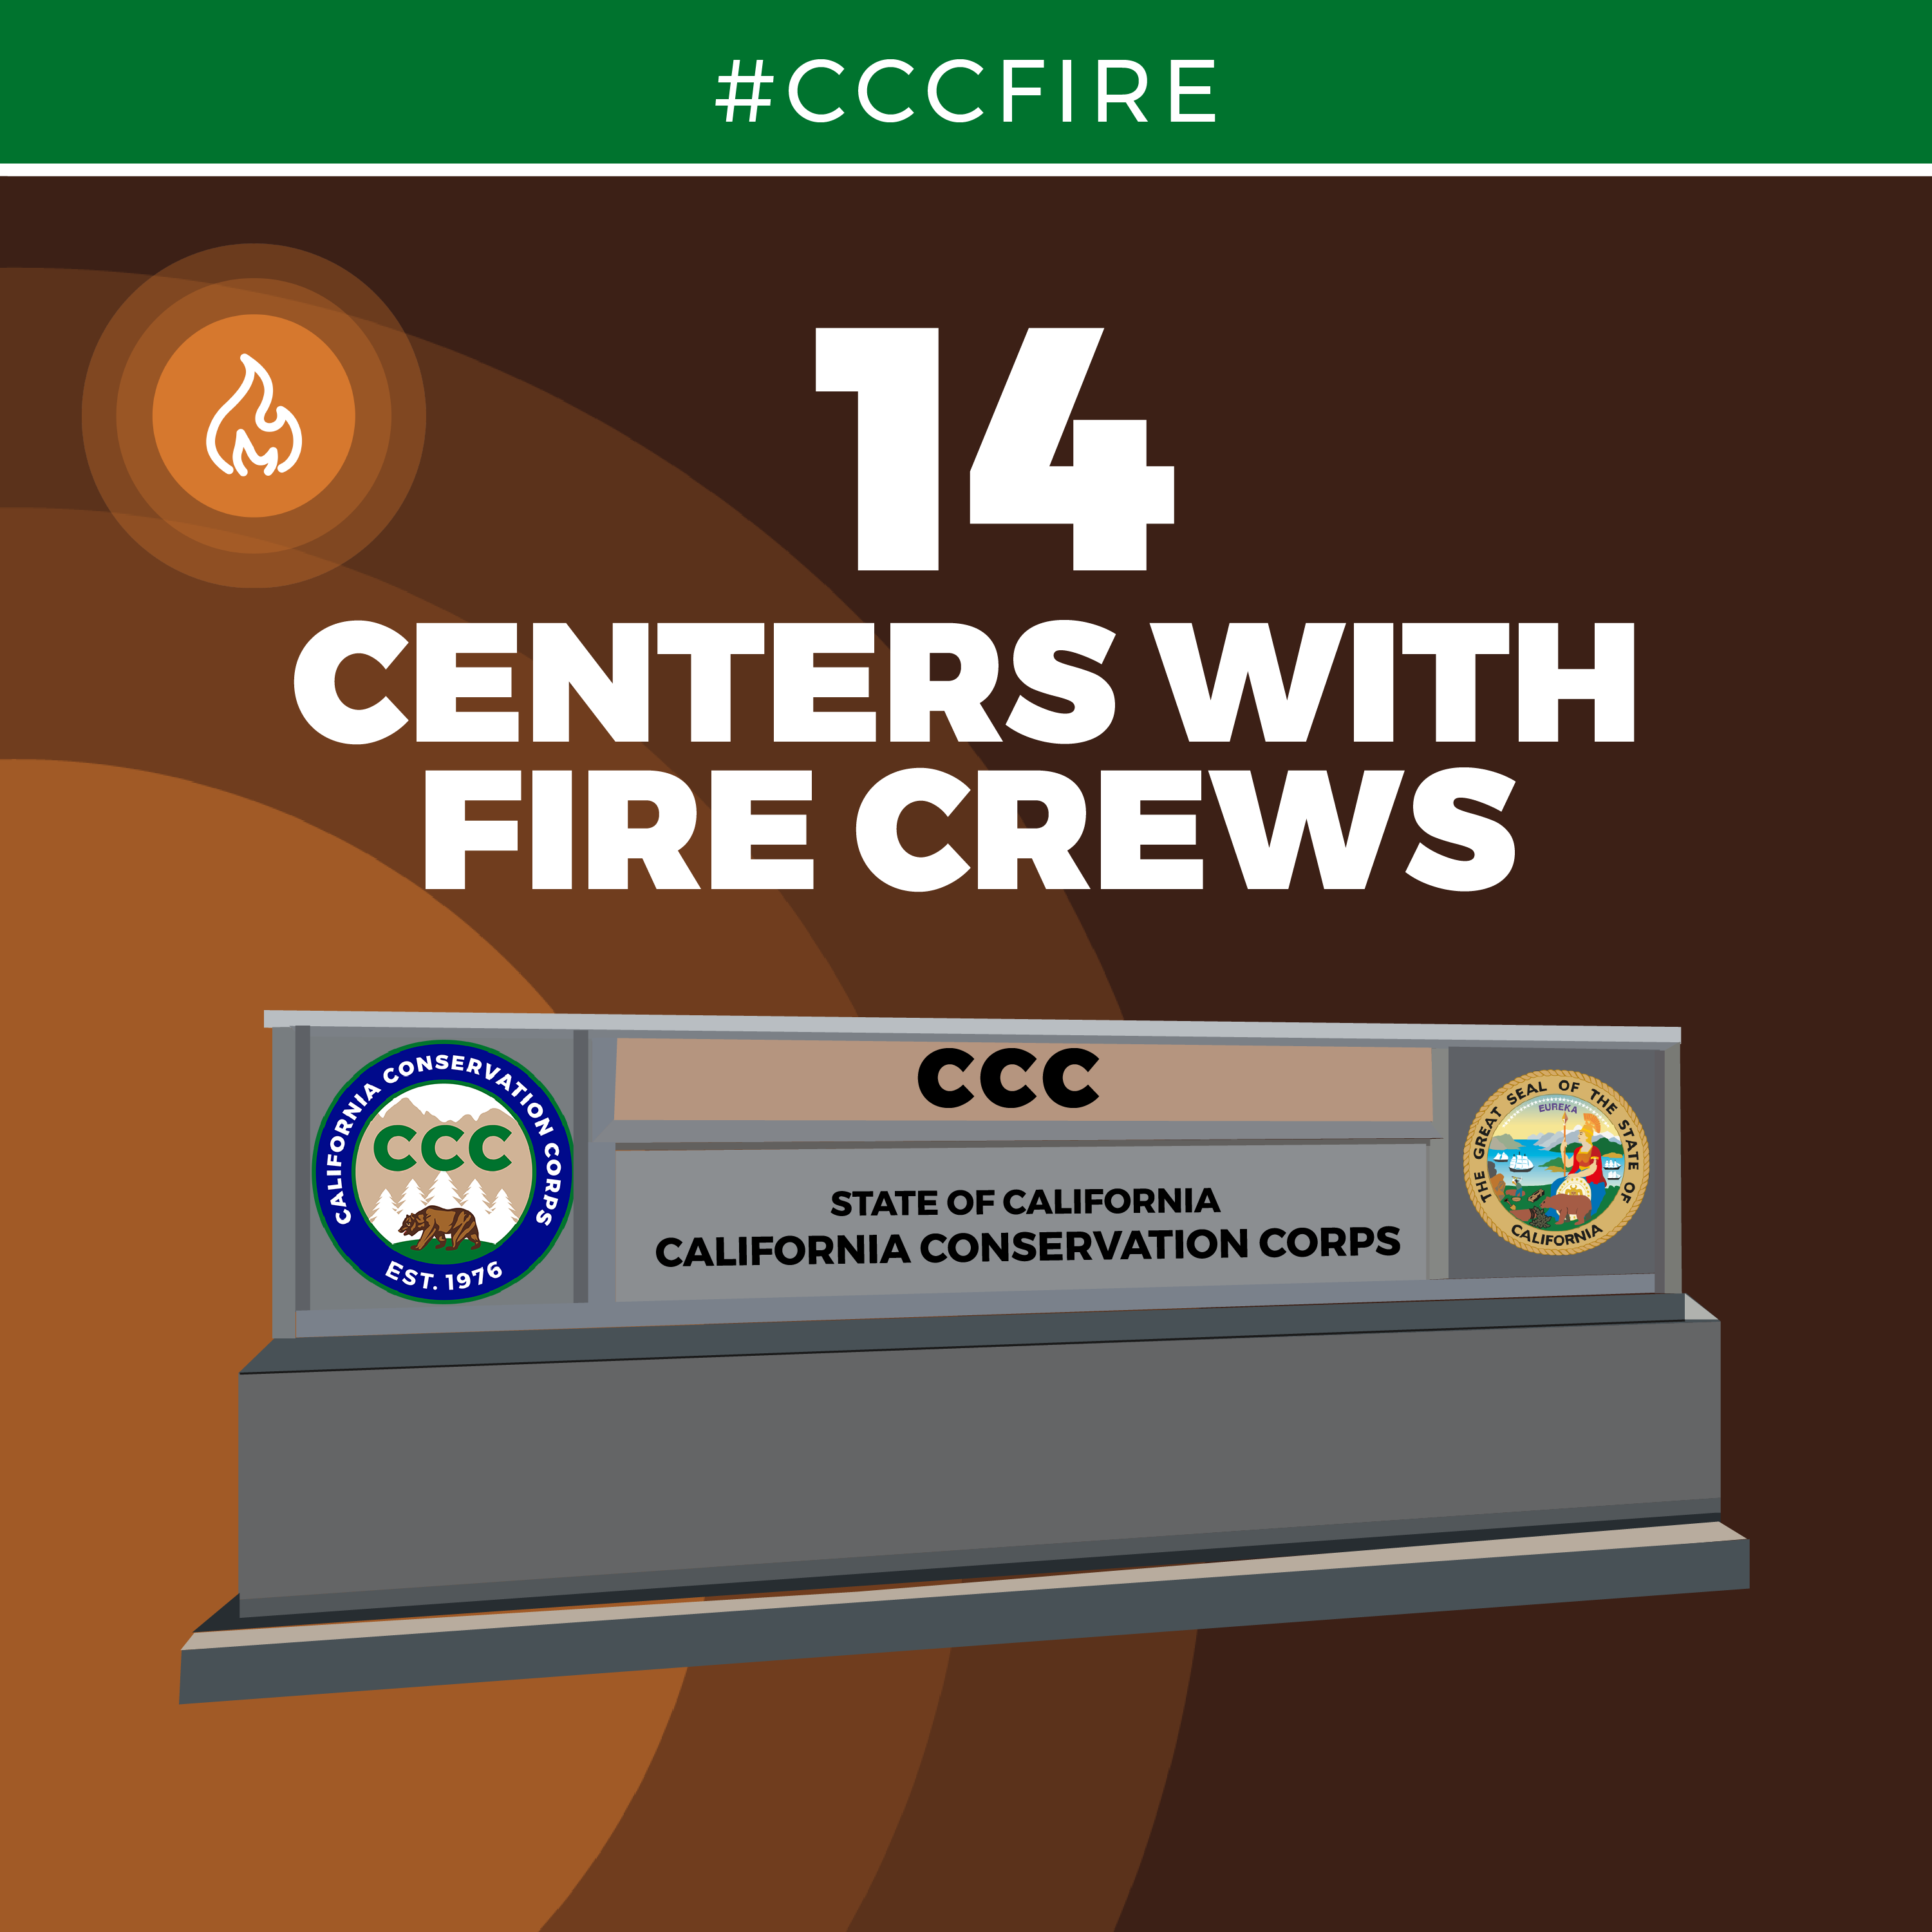 Illustration, reads #CCCfire, 14 centers with fire crews, depcits exterior signage of a CCC center reading CCC, State of California, California Conservation Corps, featuring CCC logo and State of California seal